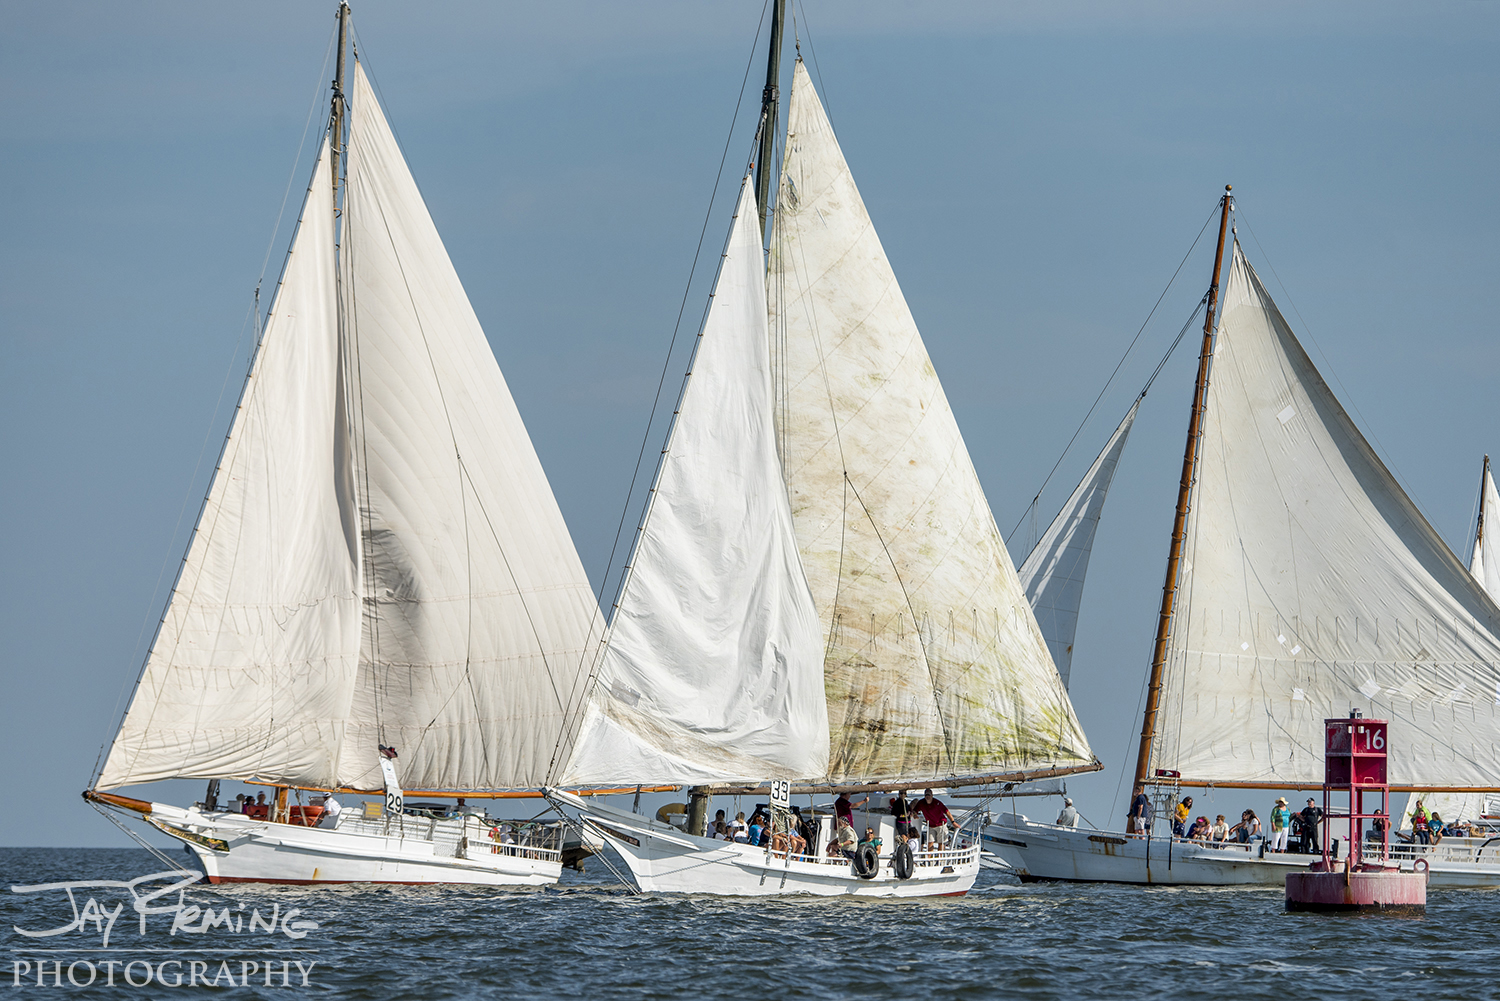 Skipjacks tack around the 16-buoy in Tangier Sound to head south on the second leg of the race